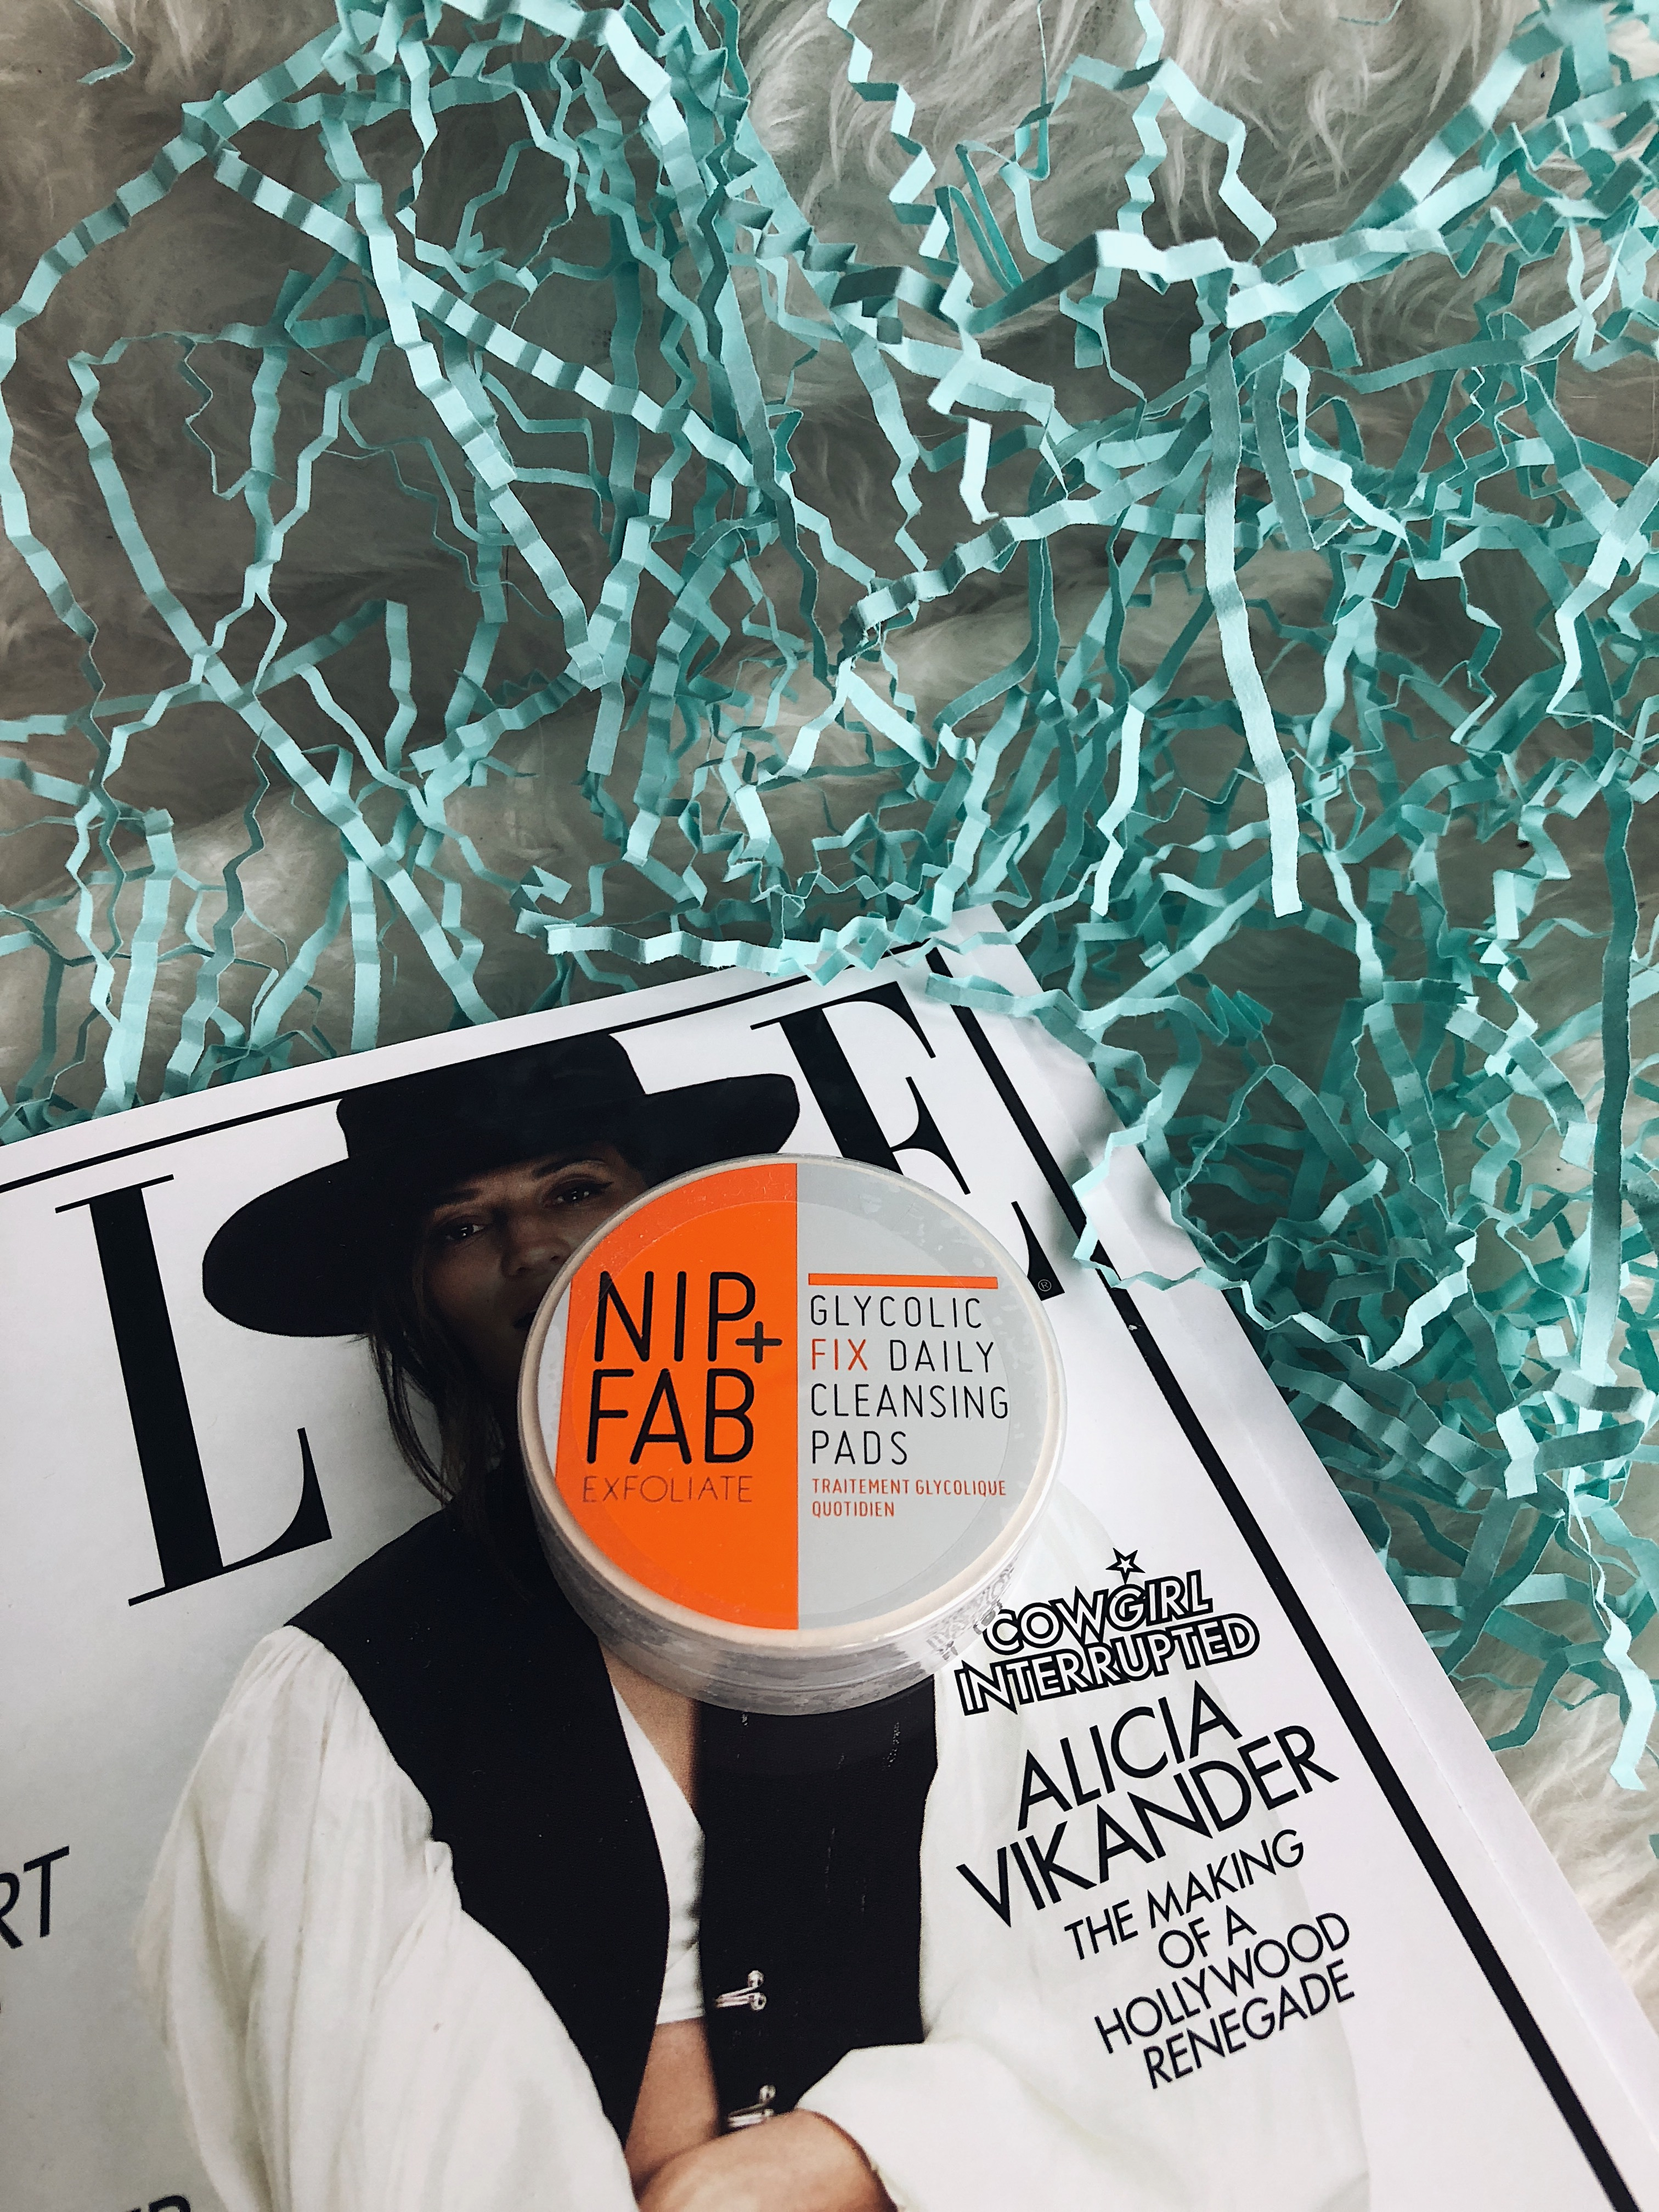 April 2018 Lookfantastic Subscription Box - Nip + Fab Gylcolic fix daily cleansing pads